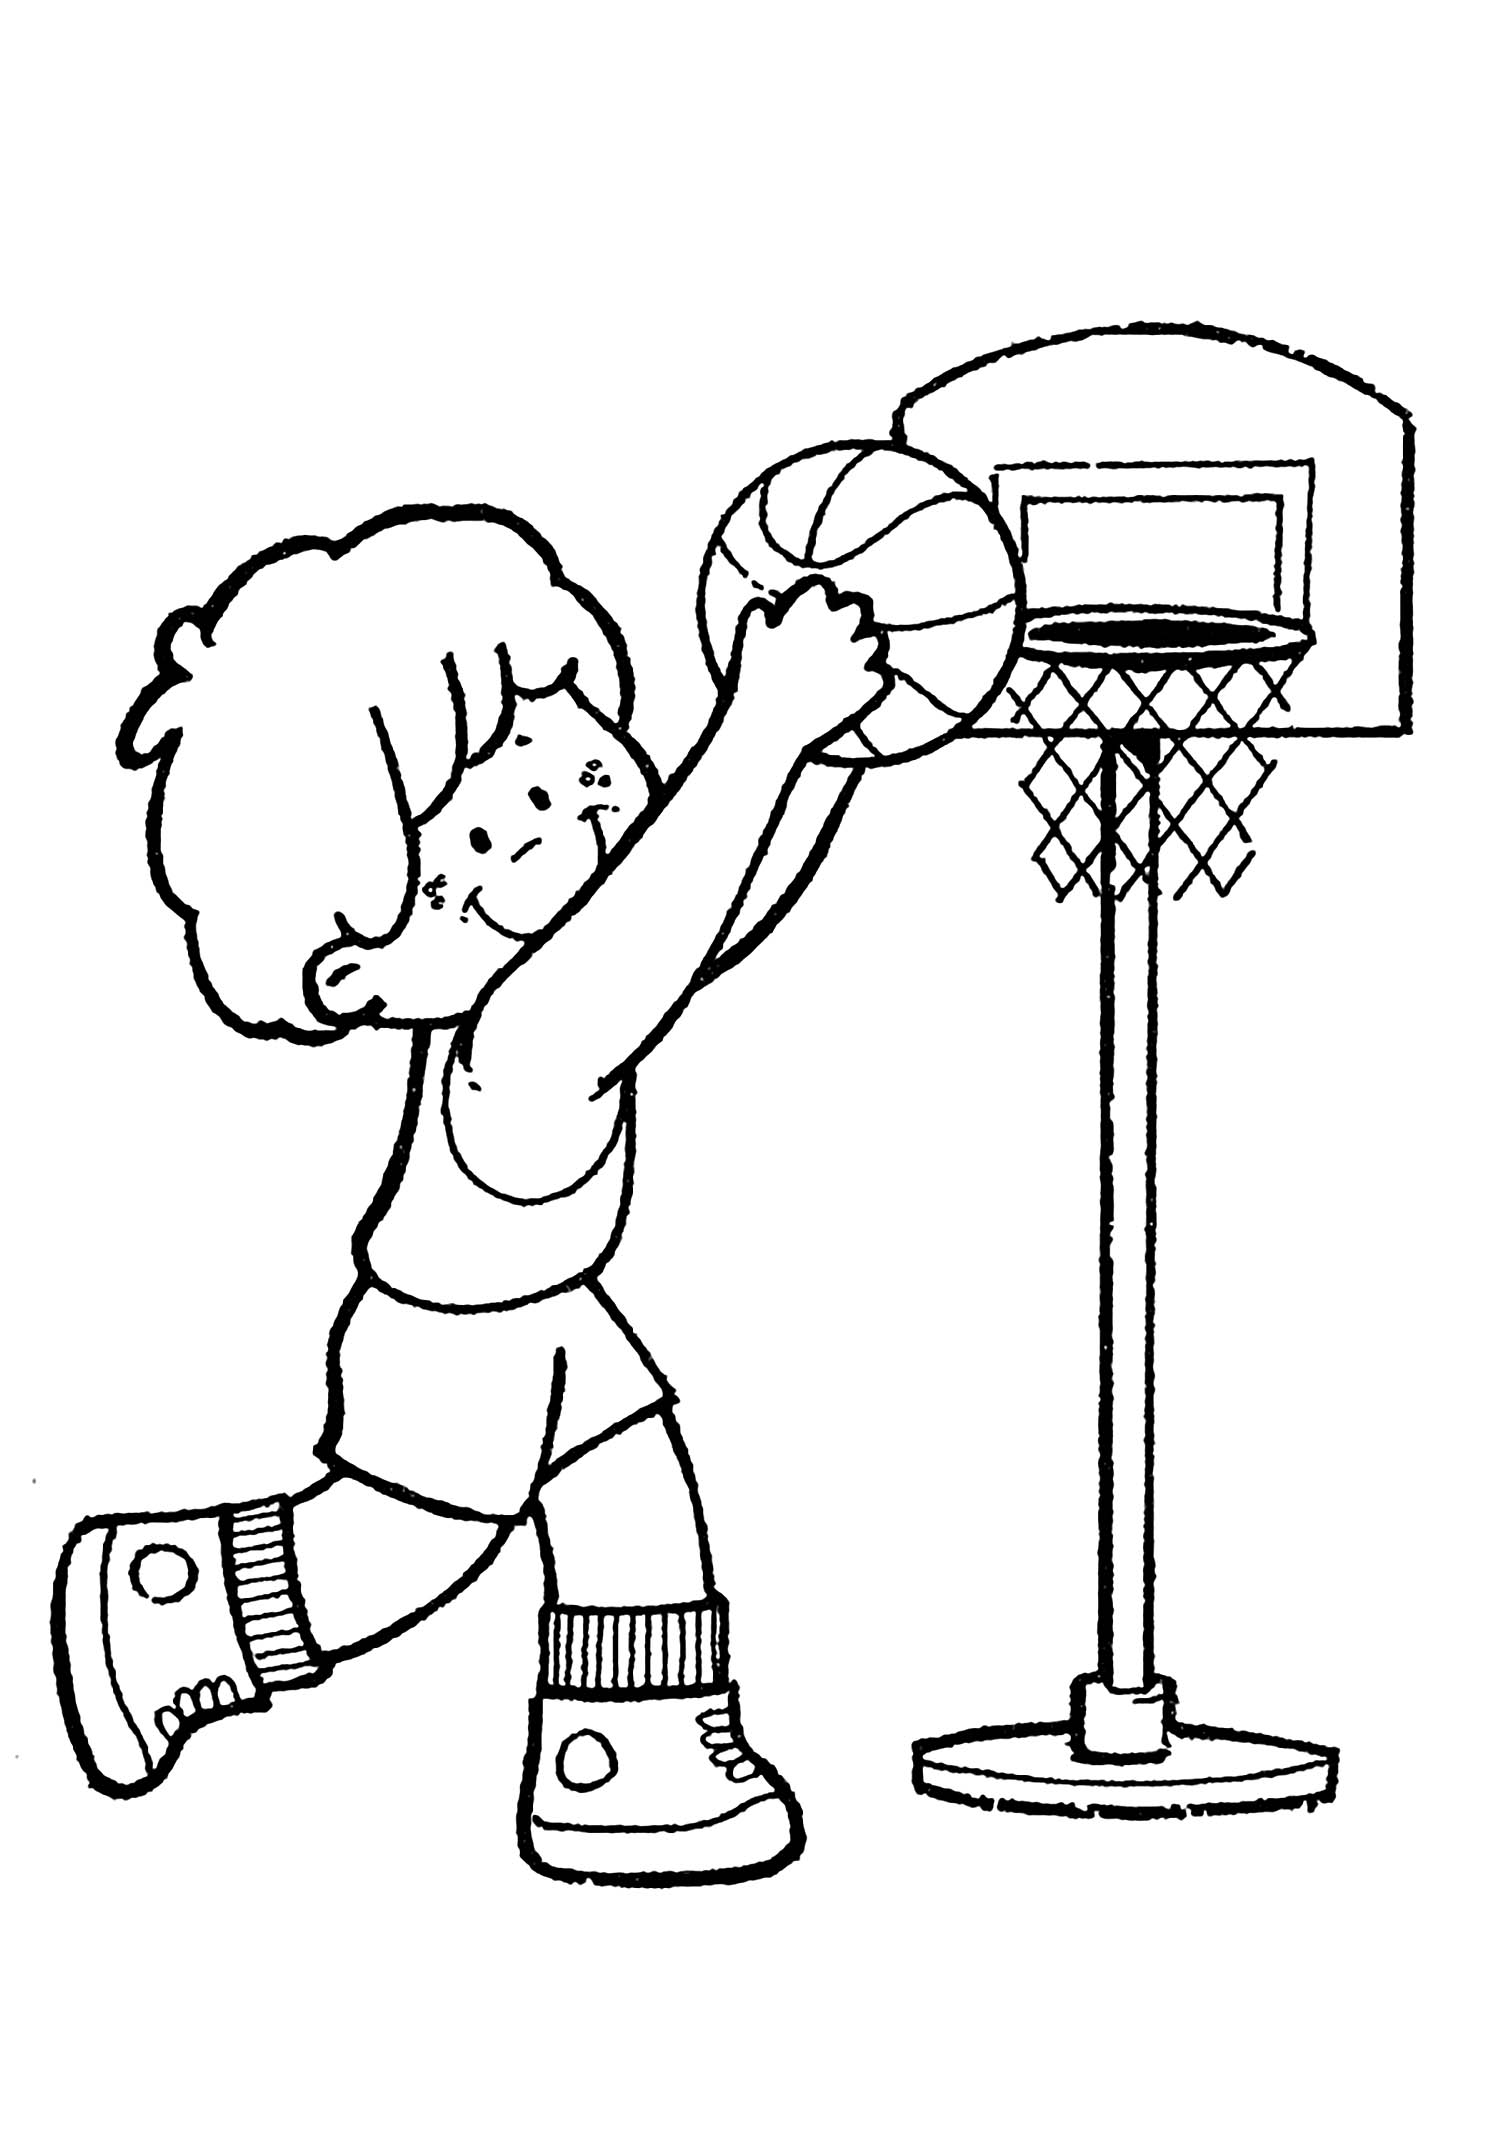 basketball pictures to color basketball pictures to color basketball pictures to color